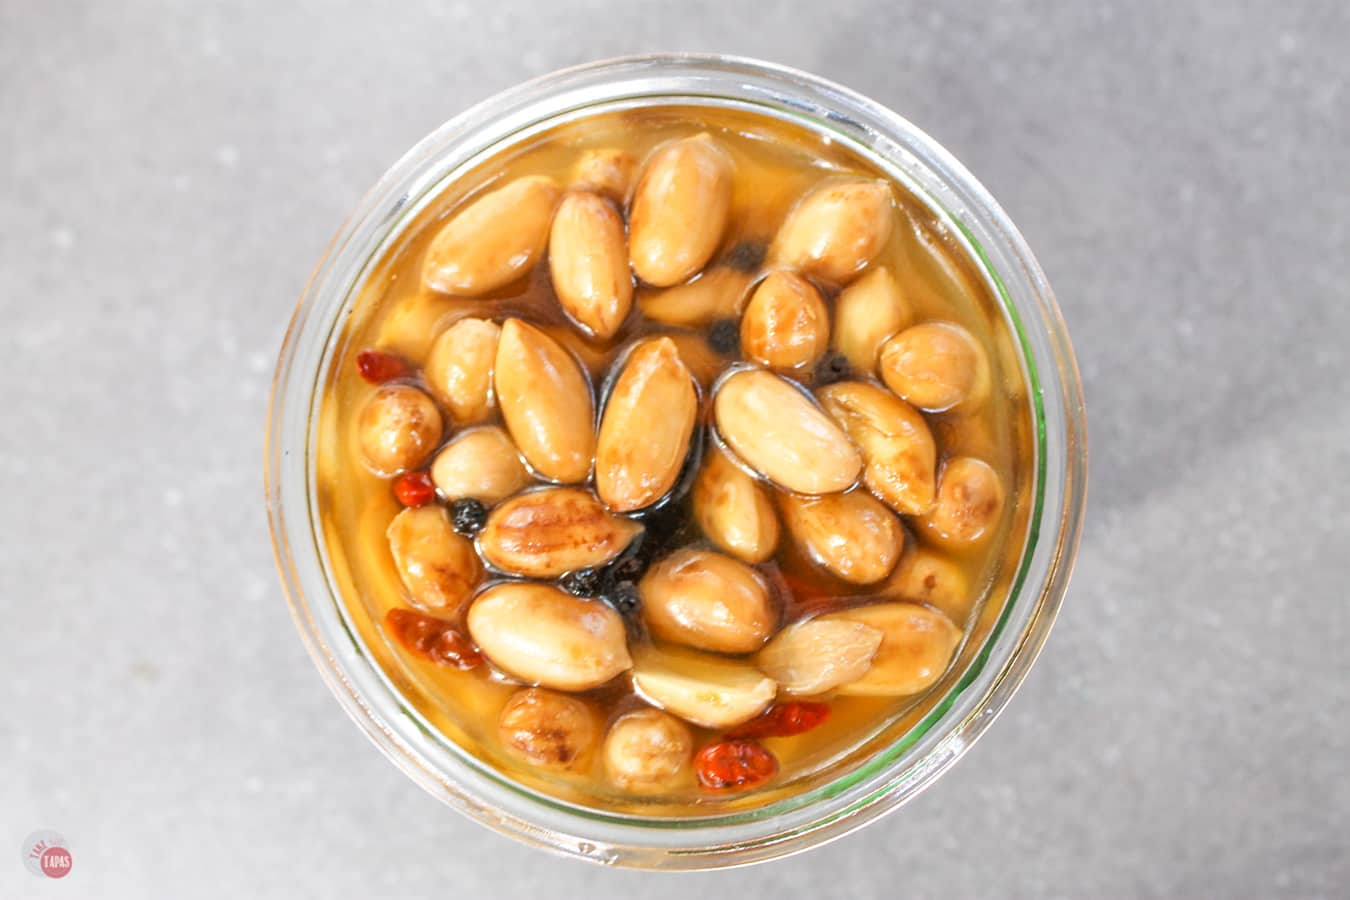 Pickled Boiled Peanuts – Sweet and Sour Peanuts